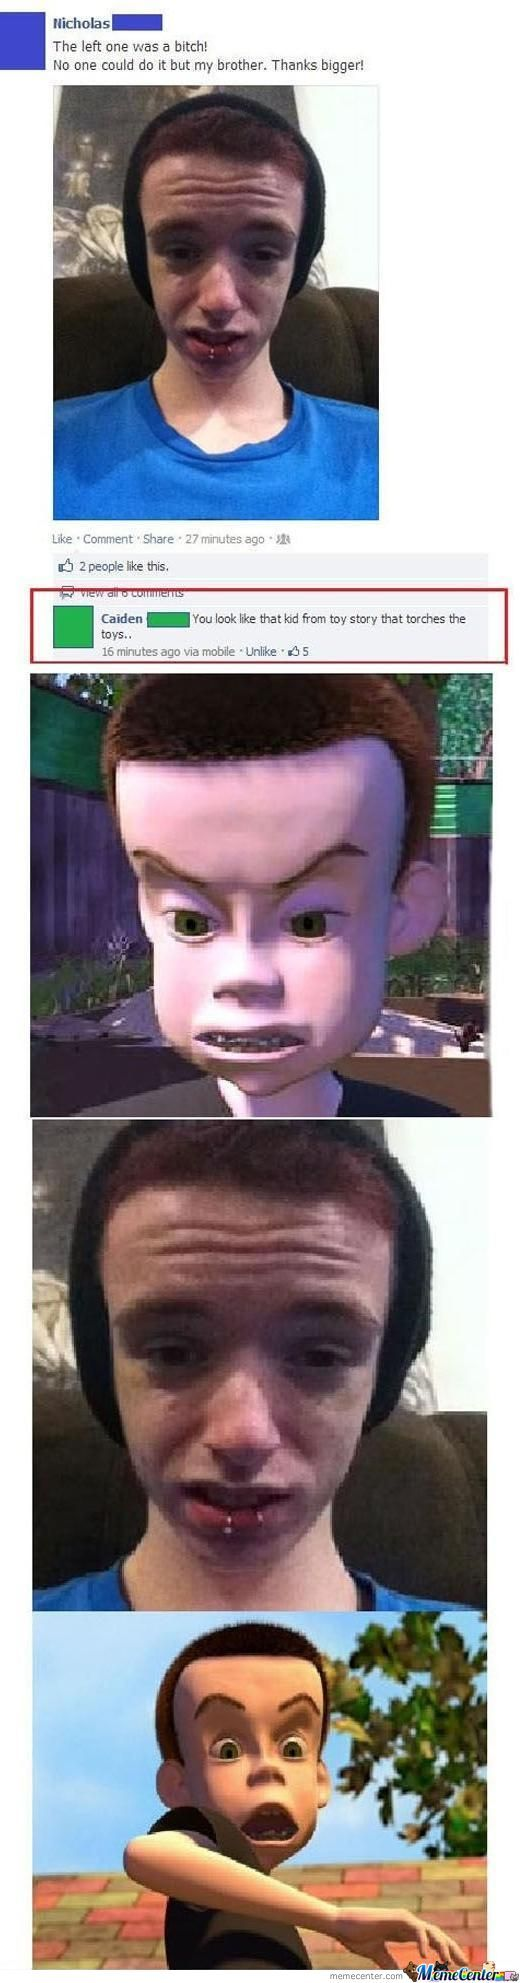 The Kid From Toy Story